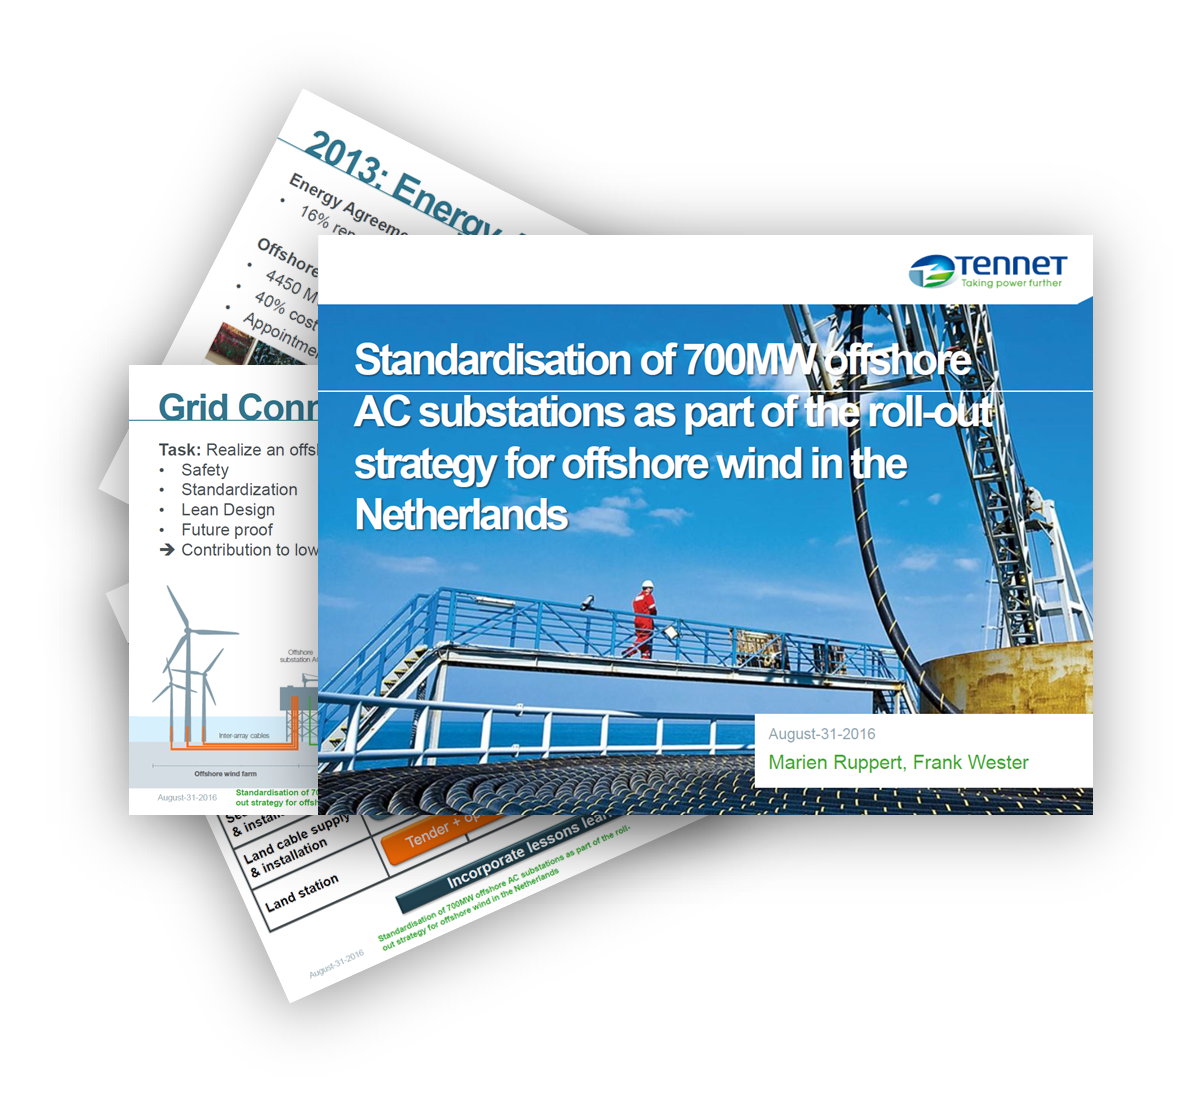 Tennet presents: Standardisation of 700MW offshore